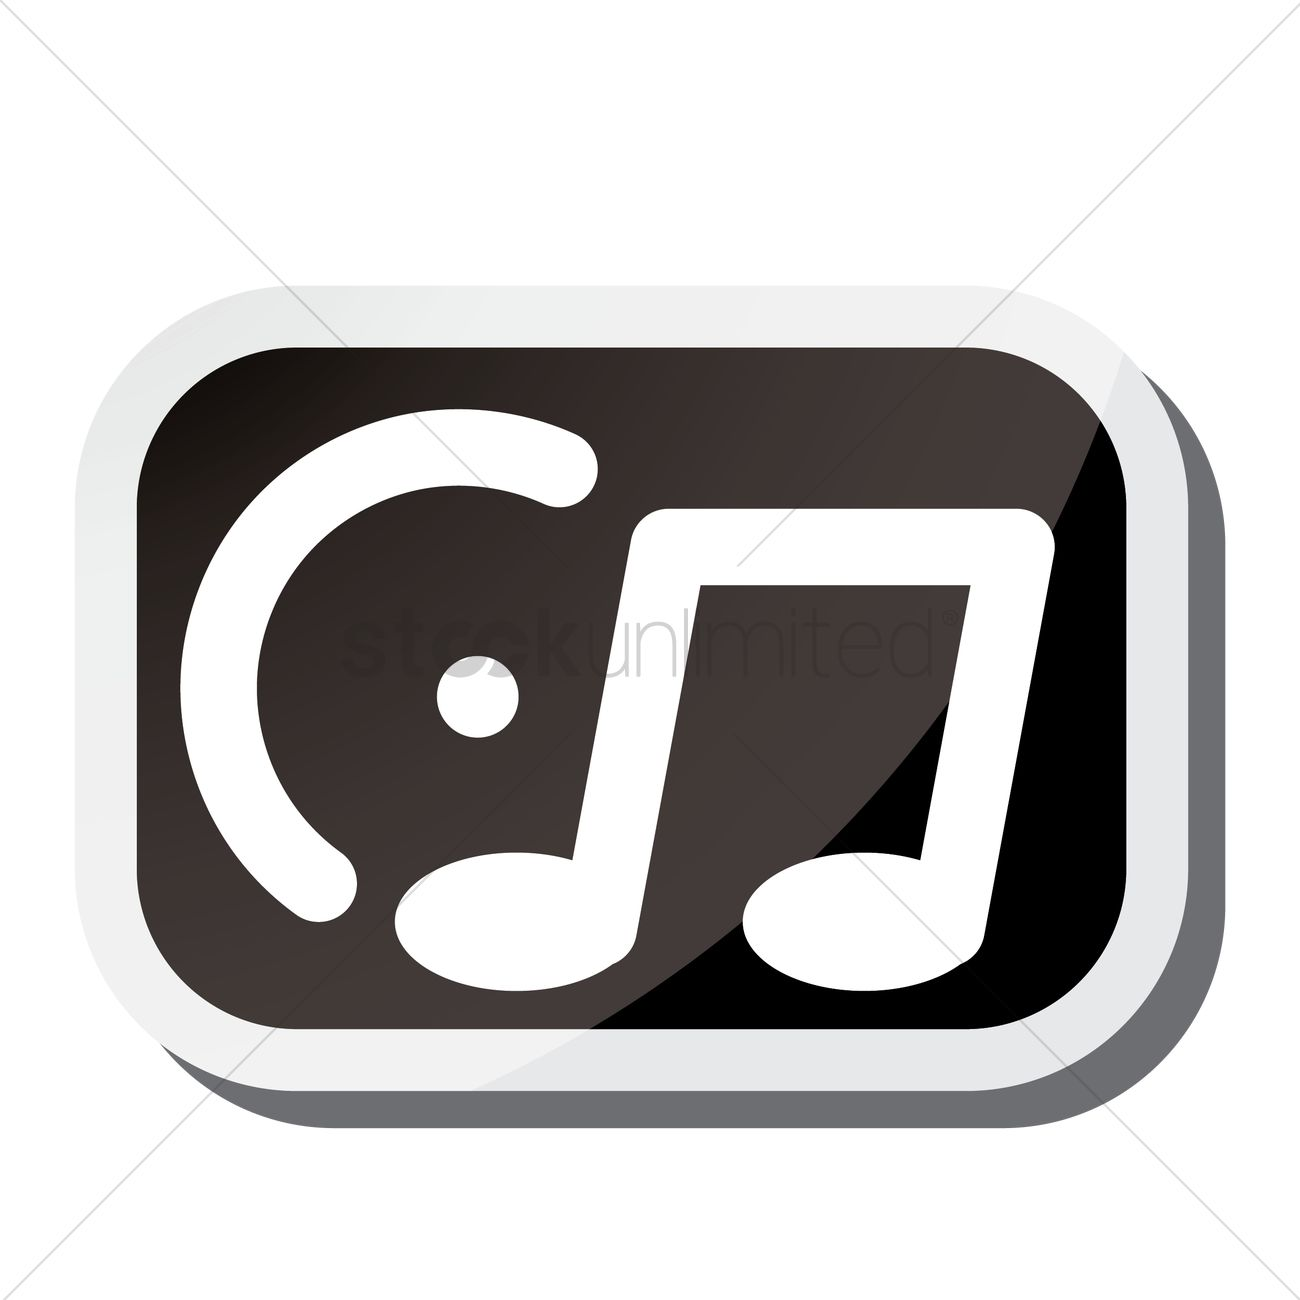 Music player icon Vector Image - 1941733 | StockUnlimited